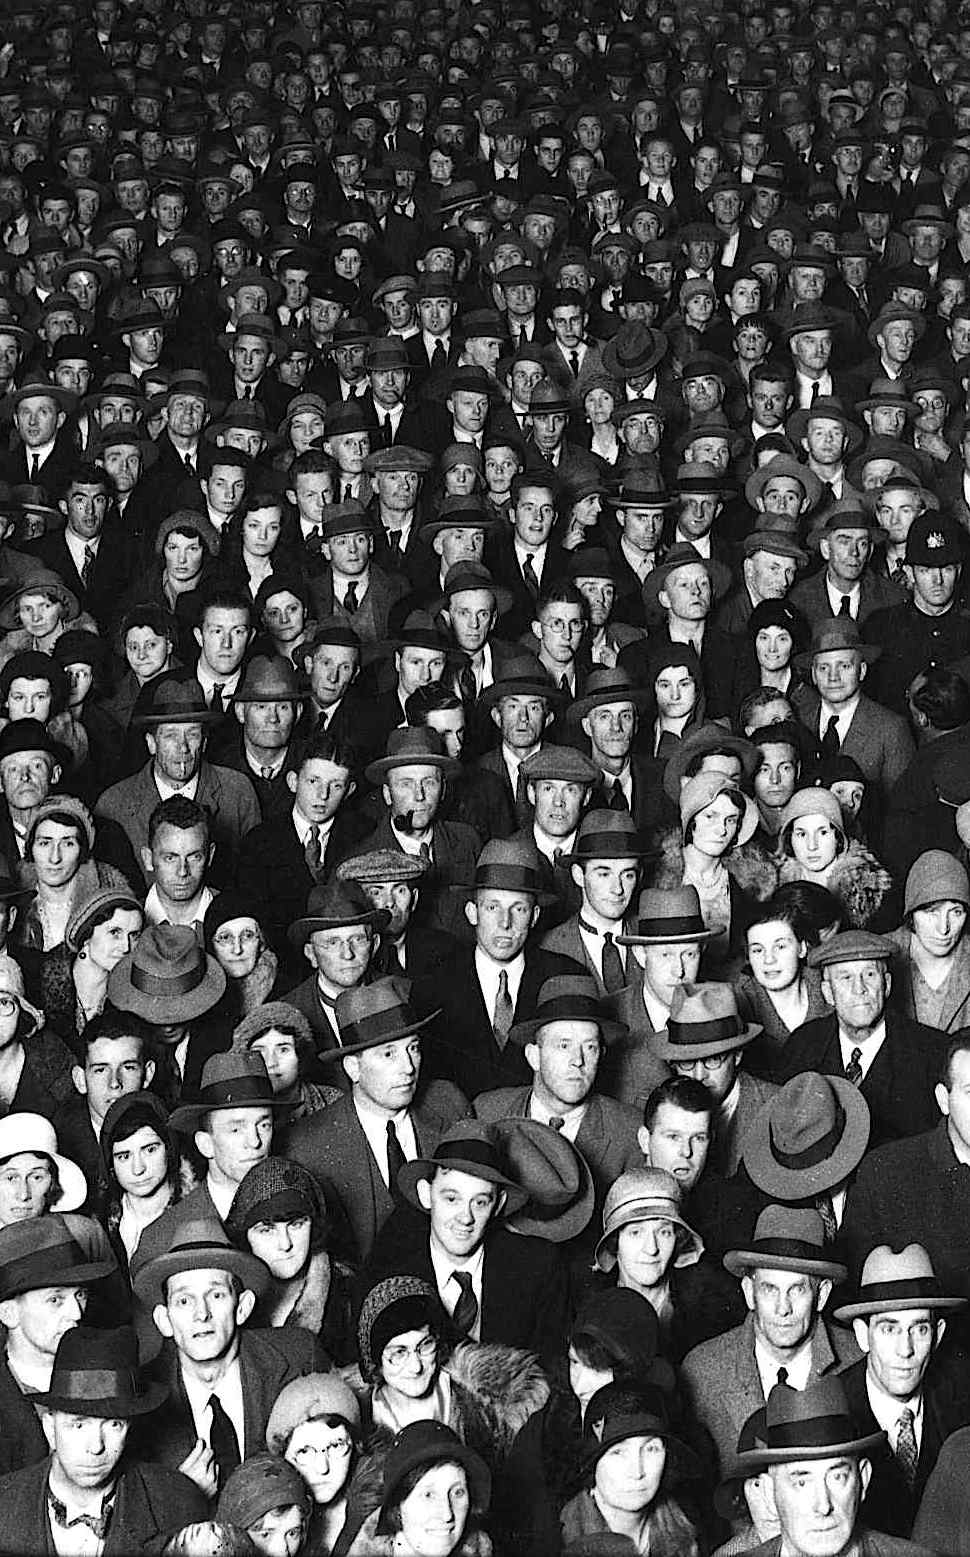 a 1931 crowd of spectators facing the camera in a photograph